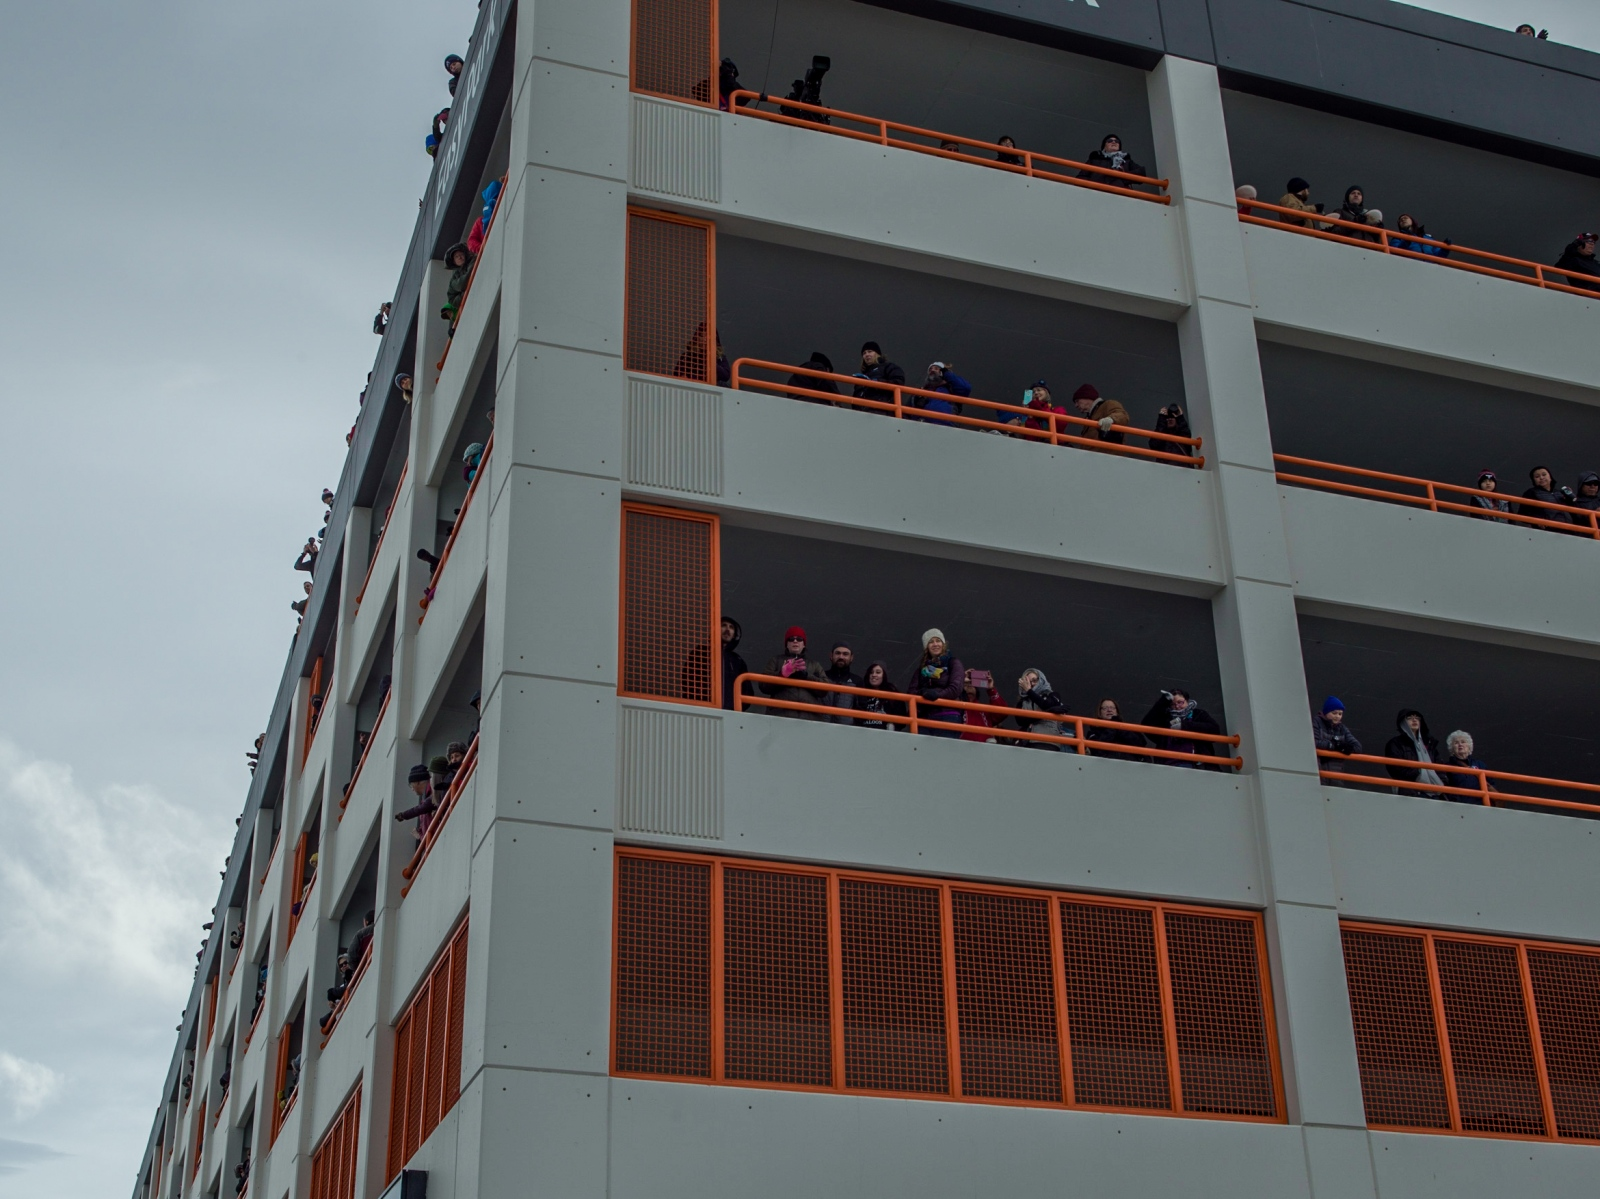 Spectators watch the ceremonial Iditarod start from a parking garage in downtown Anchorage on March 5, 2016.